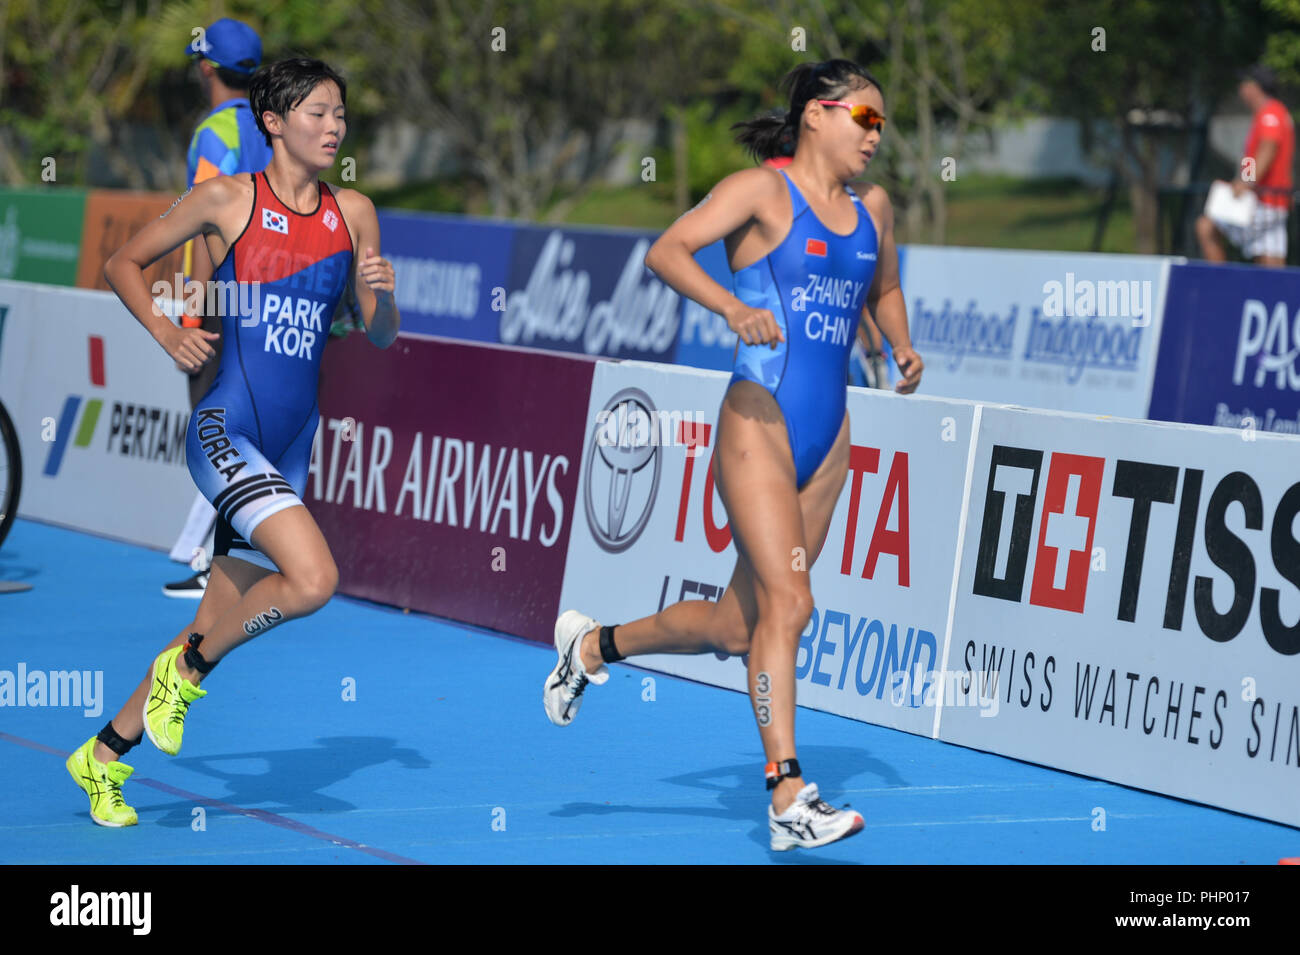 Palembang, Indonesia. 2nd Sep, 2018. Zhang Yi (R) of China competes during mixed relay of Triathlon at the 18th Asian Games in Palembang, Indonesia, Sept. 2, 2018. Credit: Veri Sanovri/Xinhua/Alamy Live News - Stock Image